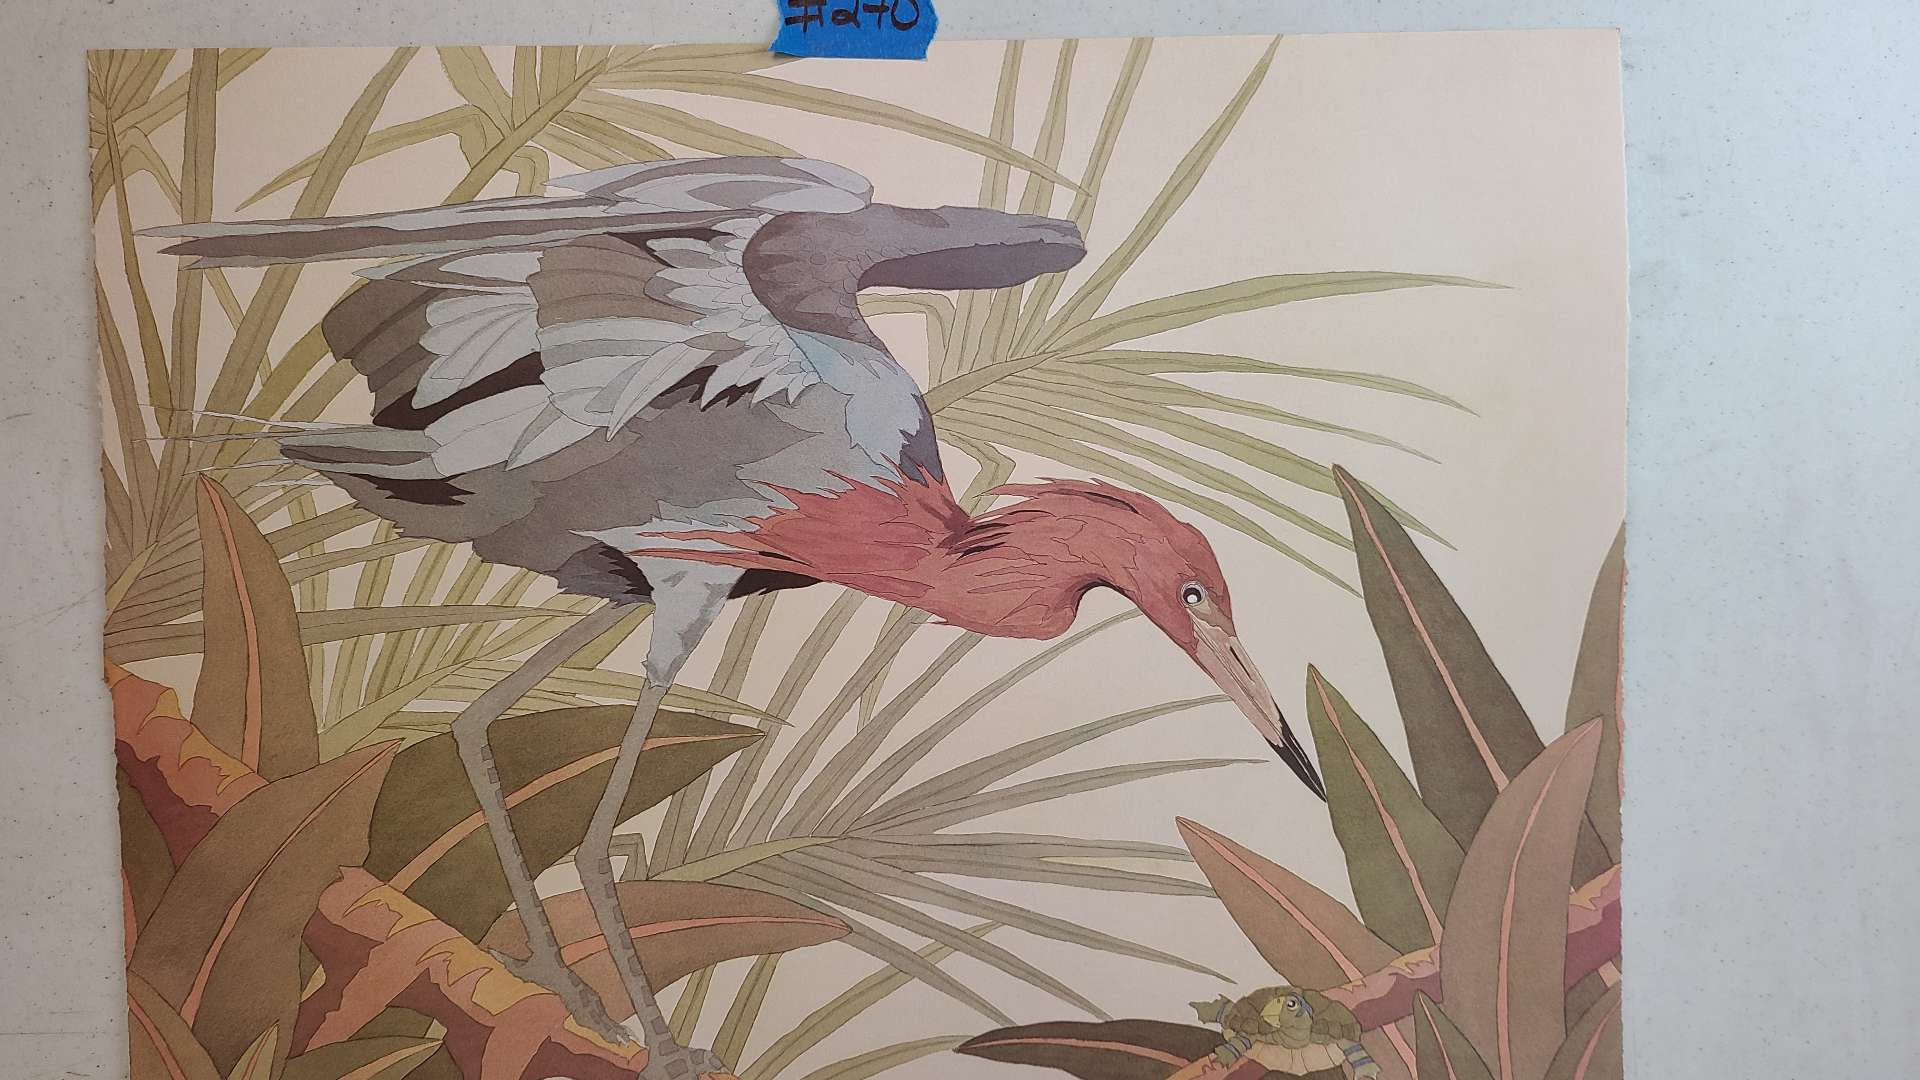 Lot # 270 Stork Themed Signed & Numbered Lithograph